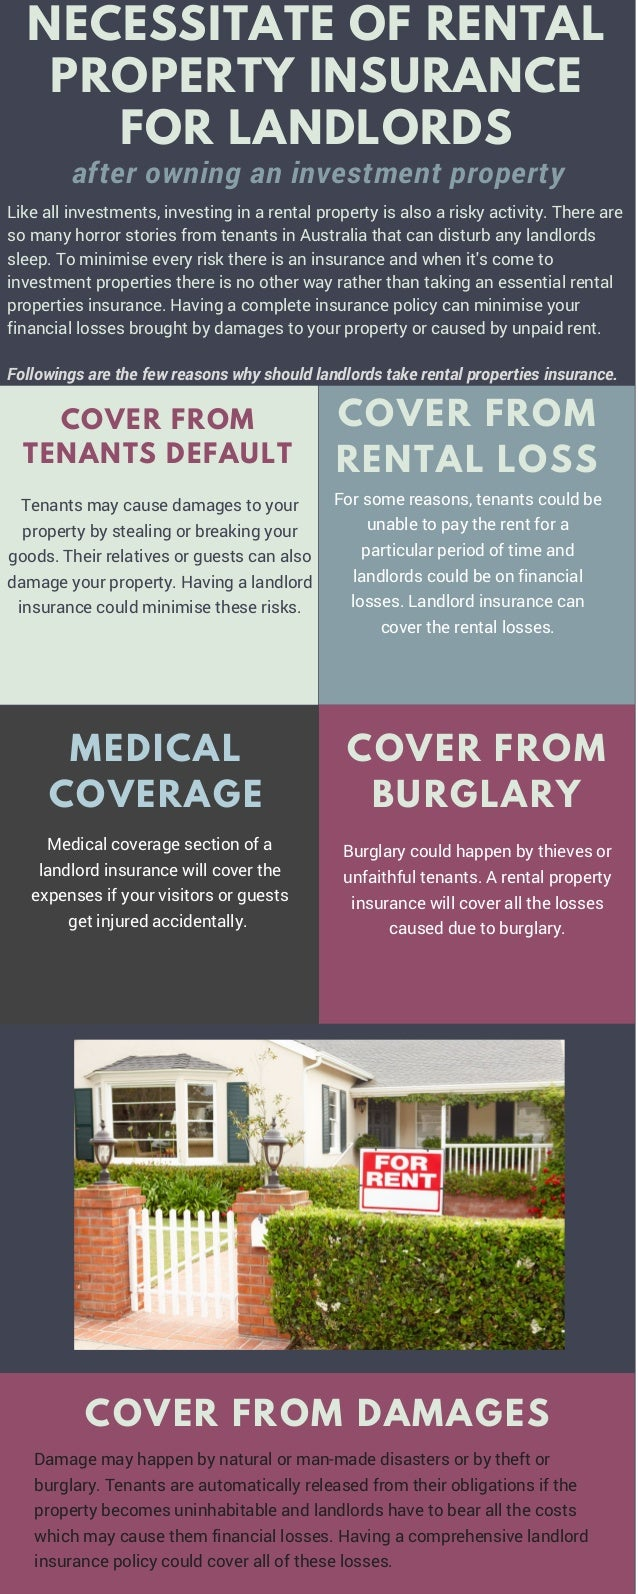 The Necessity of Rental Property Insurance for Landlords